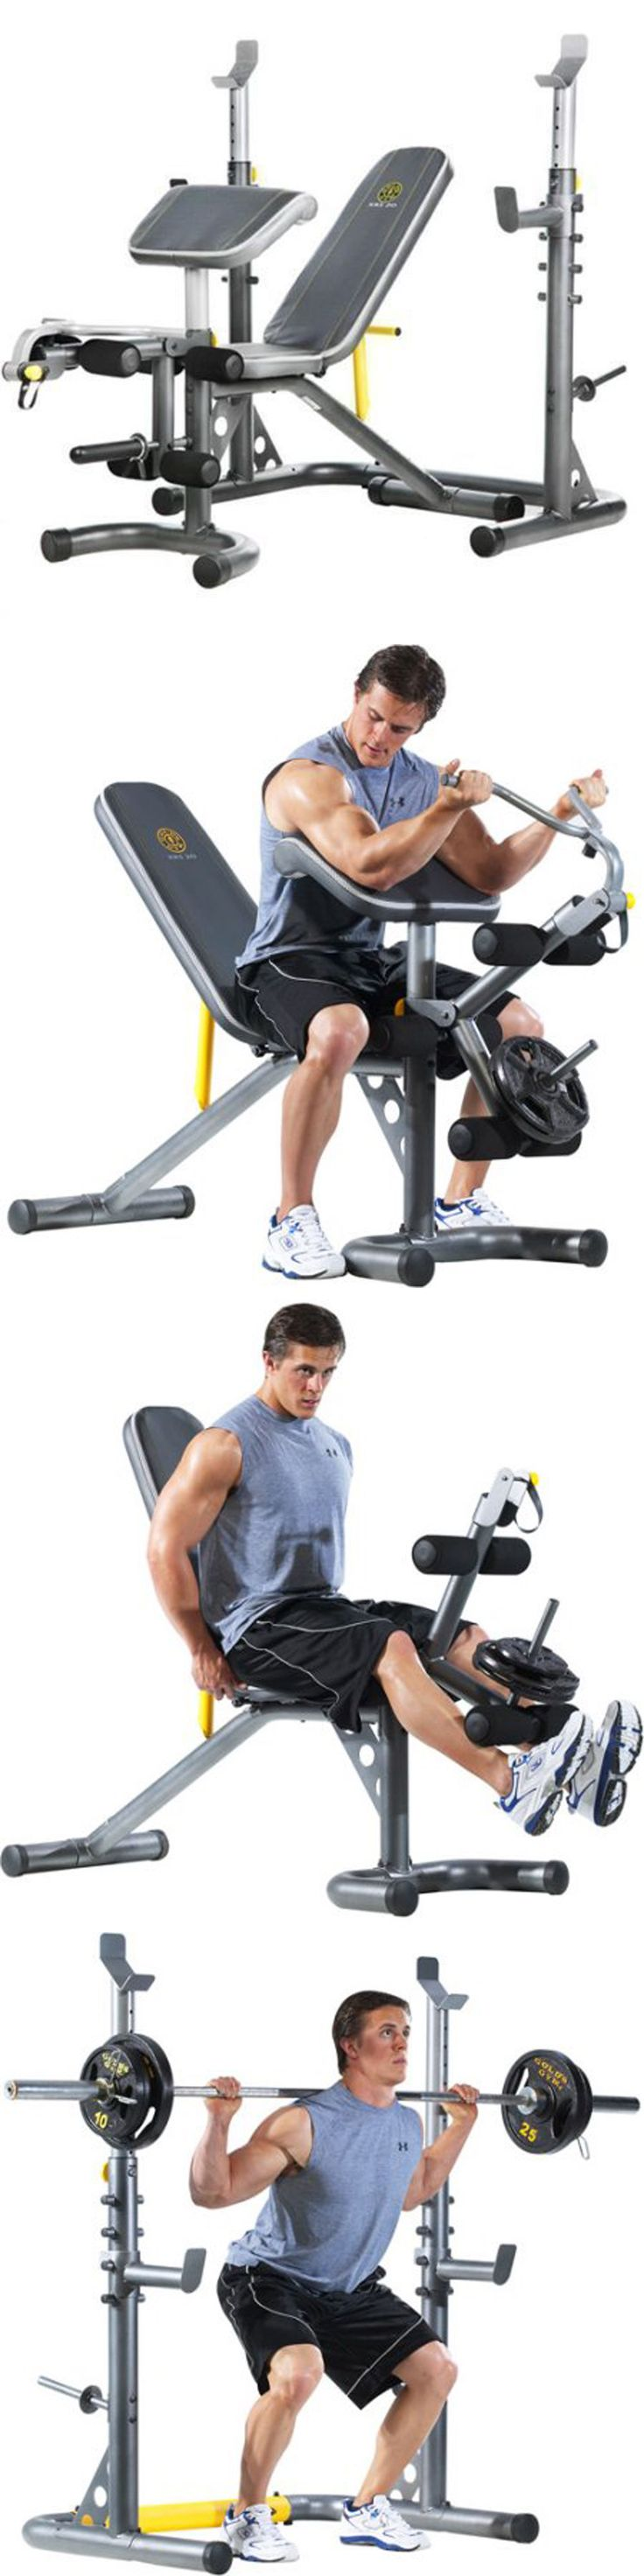 Benches 15281: Golds Gym Workout Bench Weight Lifting Press Power Rack Exercise Fitness Xrs 20 -> BUY IT NOW ONLY: $180.5 on eBay!